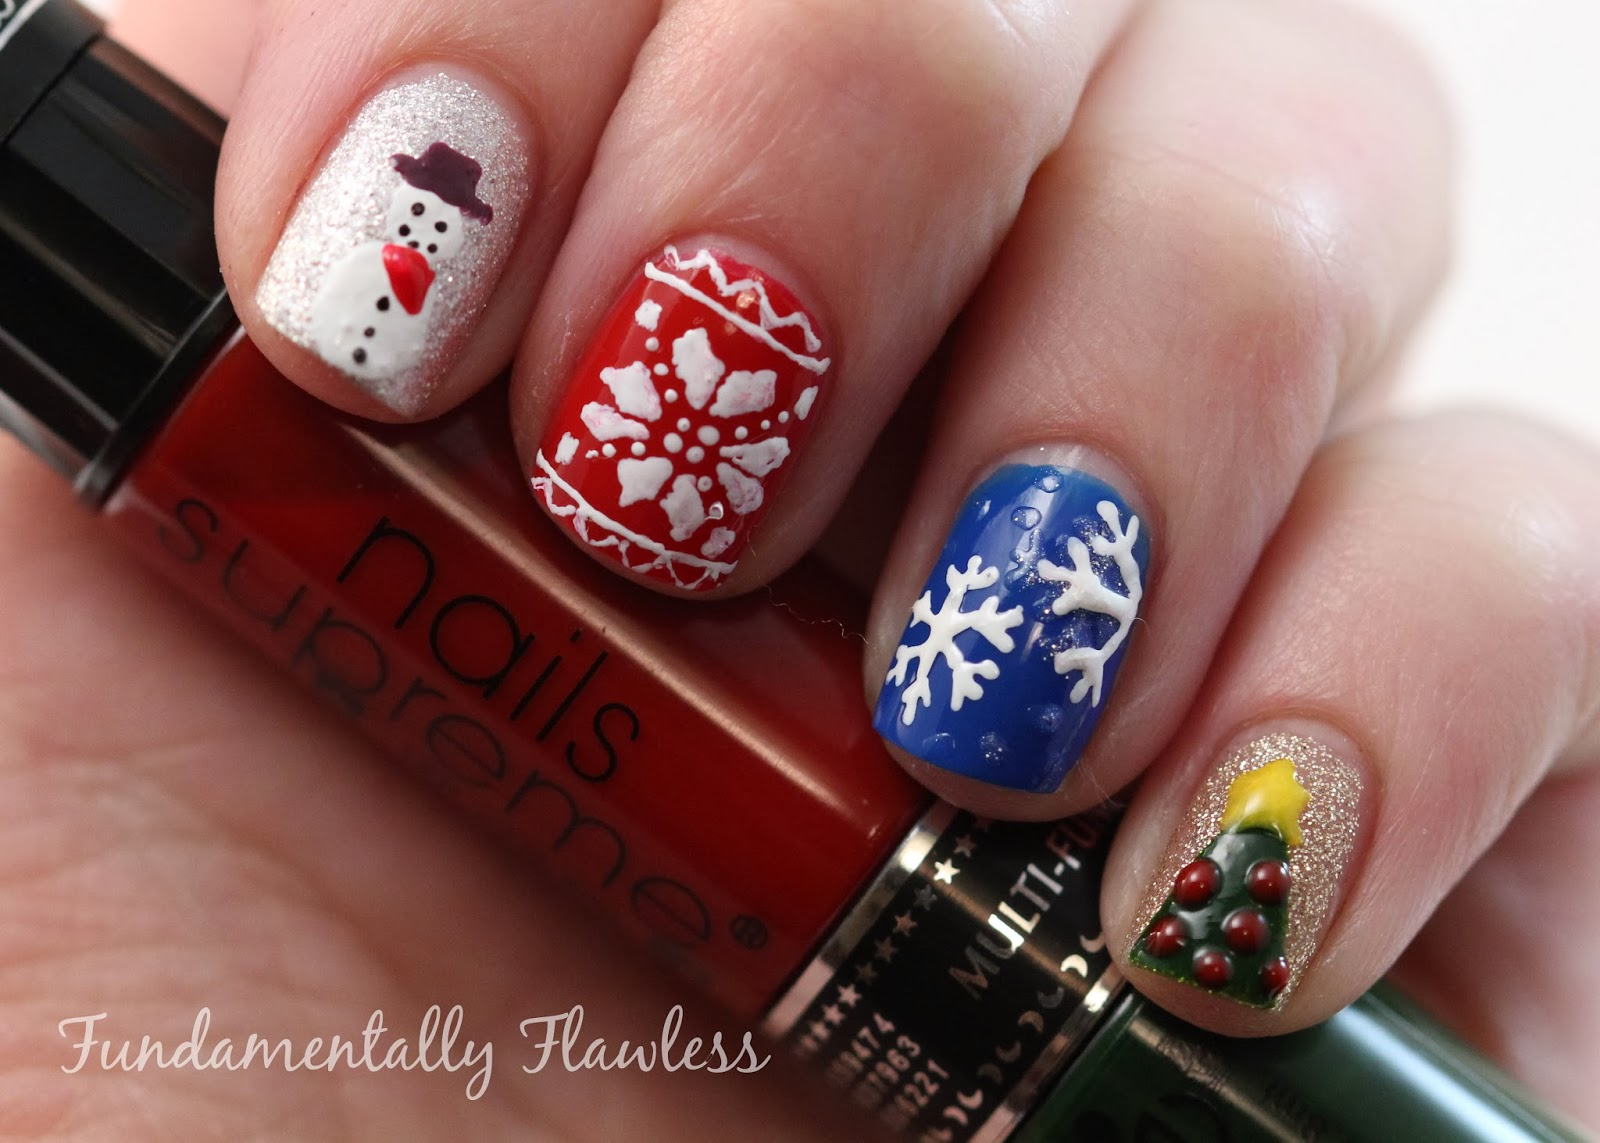 Fundamentally flawless christmas nail art nails supreme plain you can find these nails supreme nail art kits on the presents for men website priced at 1999 each prinsesfo Image collections